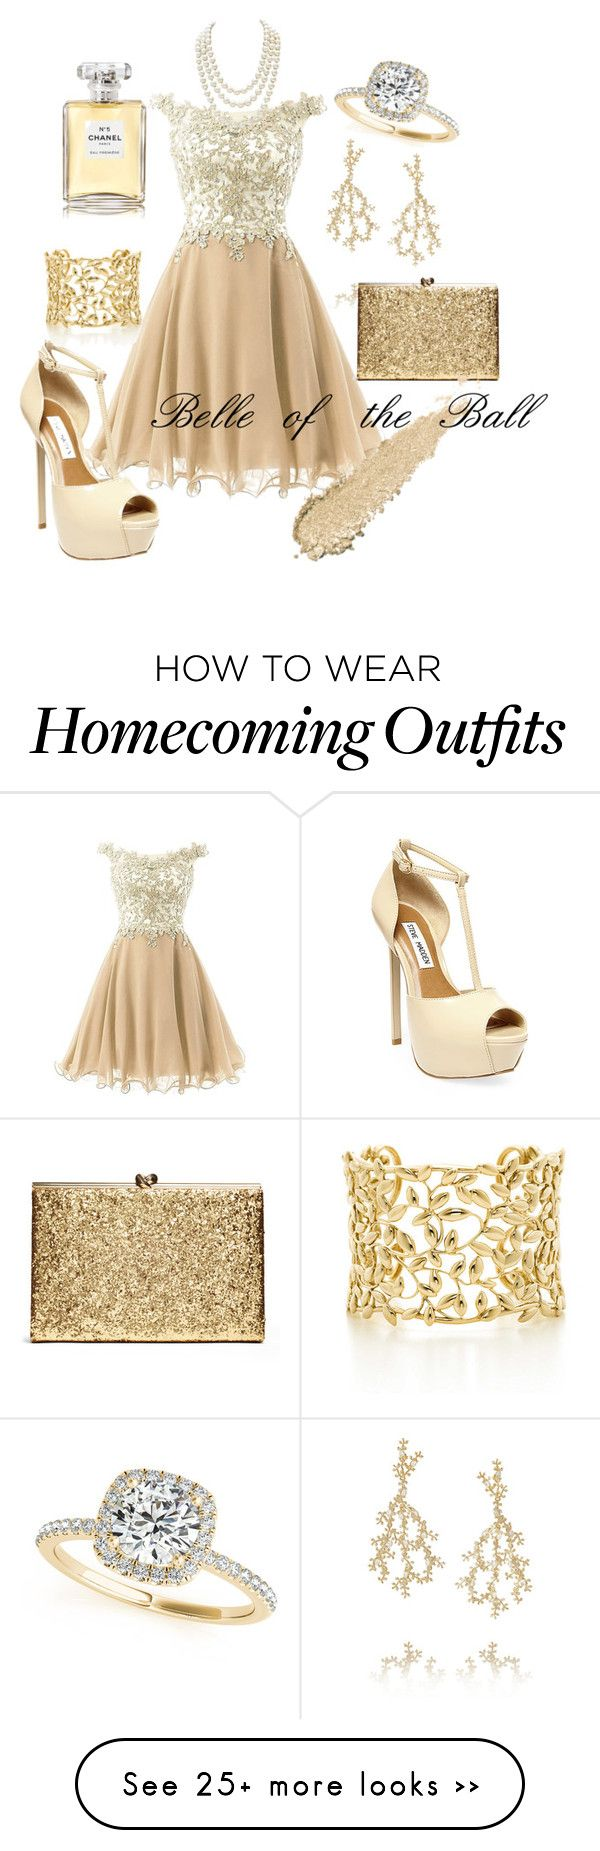 Bell Of The Ball By Mishcacao On Polyvore Featuring Rosantica Steve Madden Chanel Allurez And Paloma Picasso Beauty And The Beast Vestidos Looks Femi